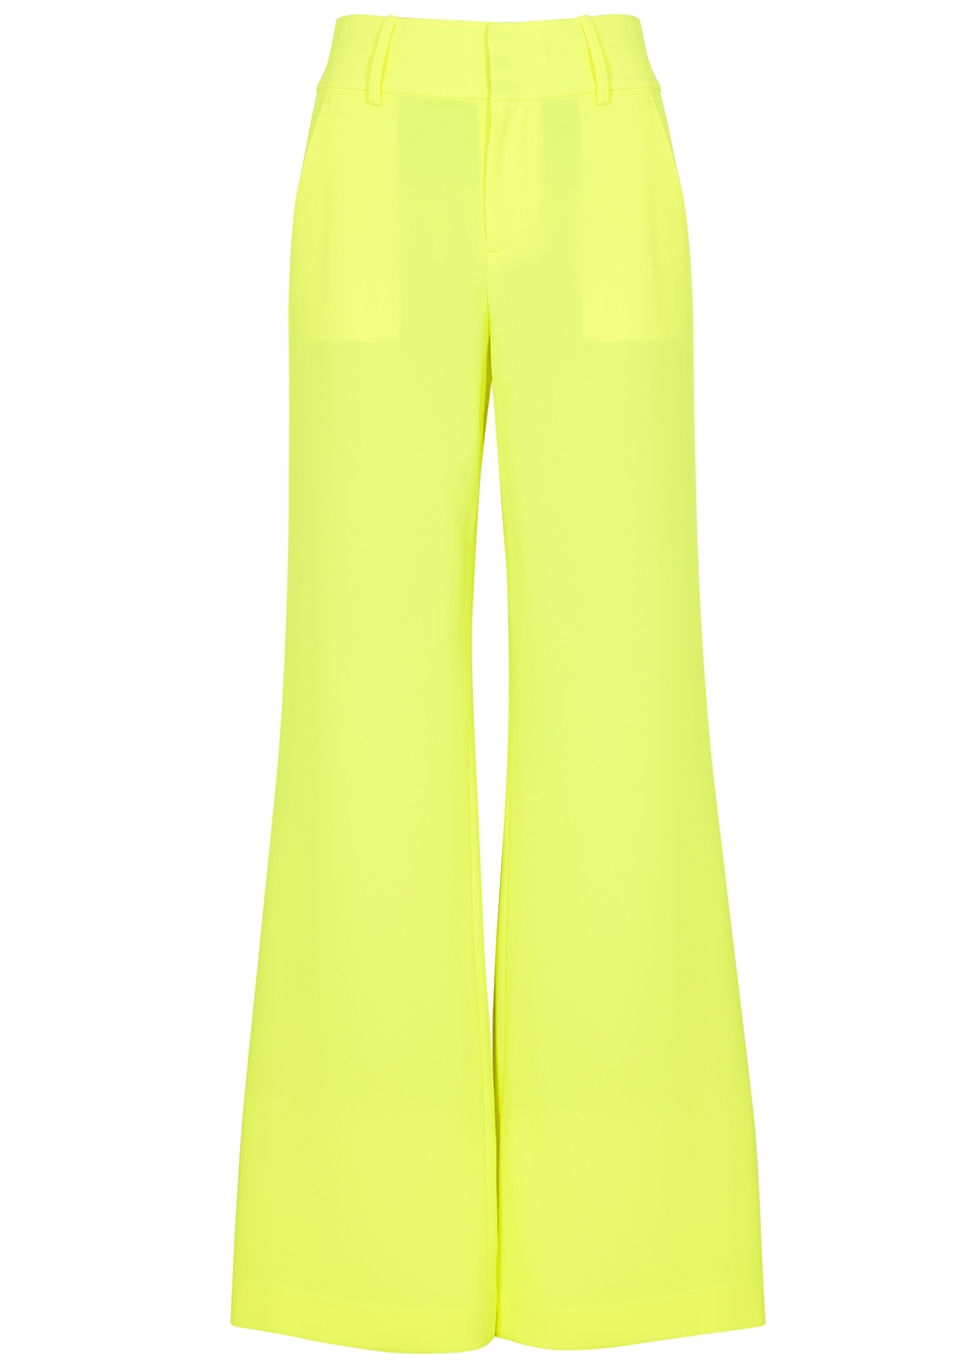 Paulette neon yellow trousers - Alice + Olivia